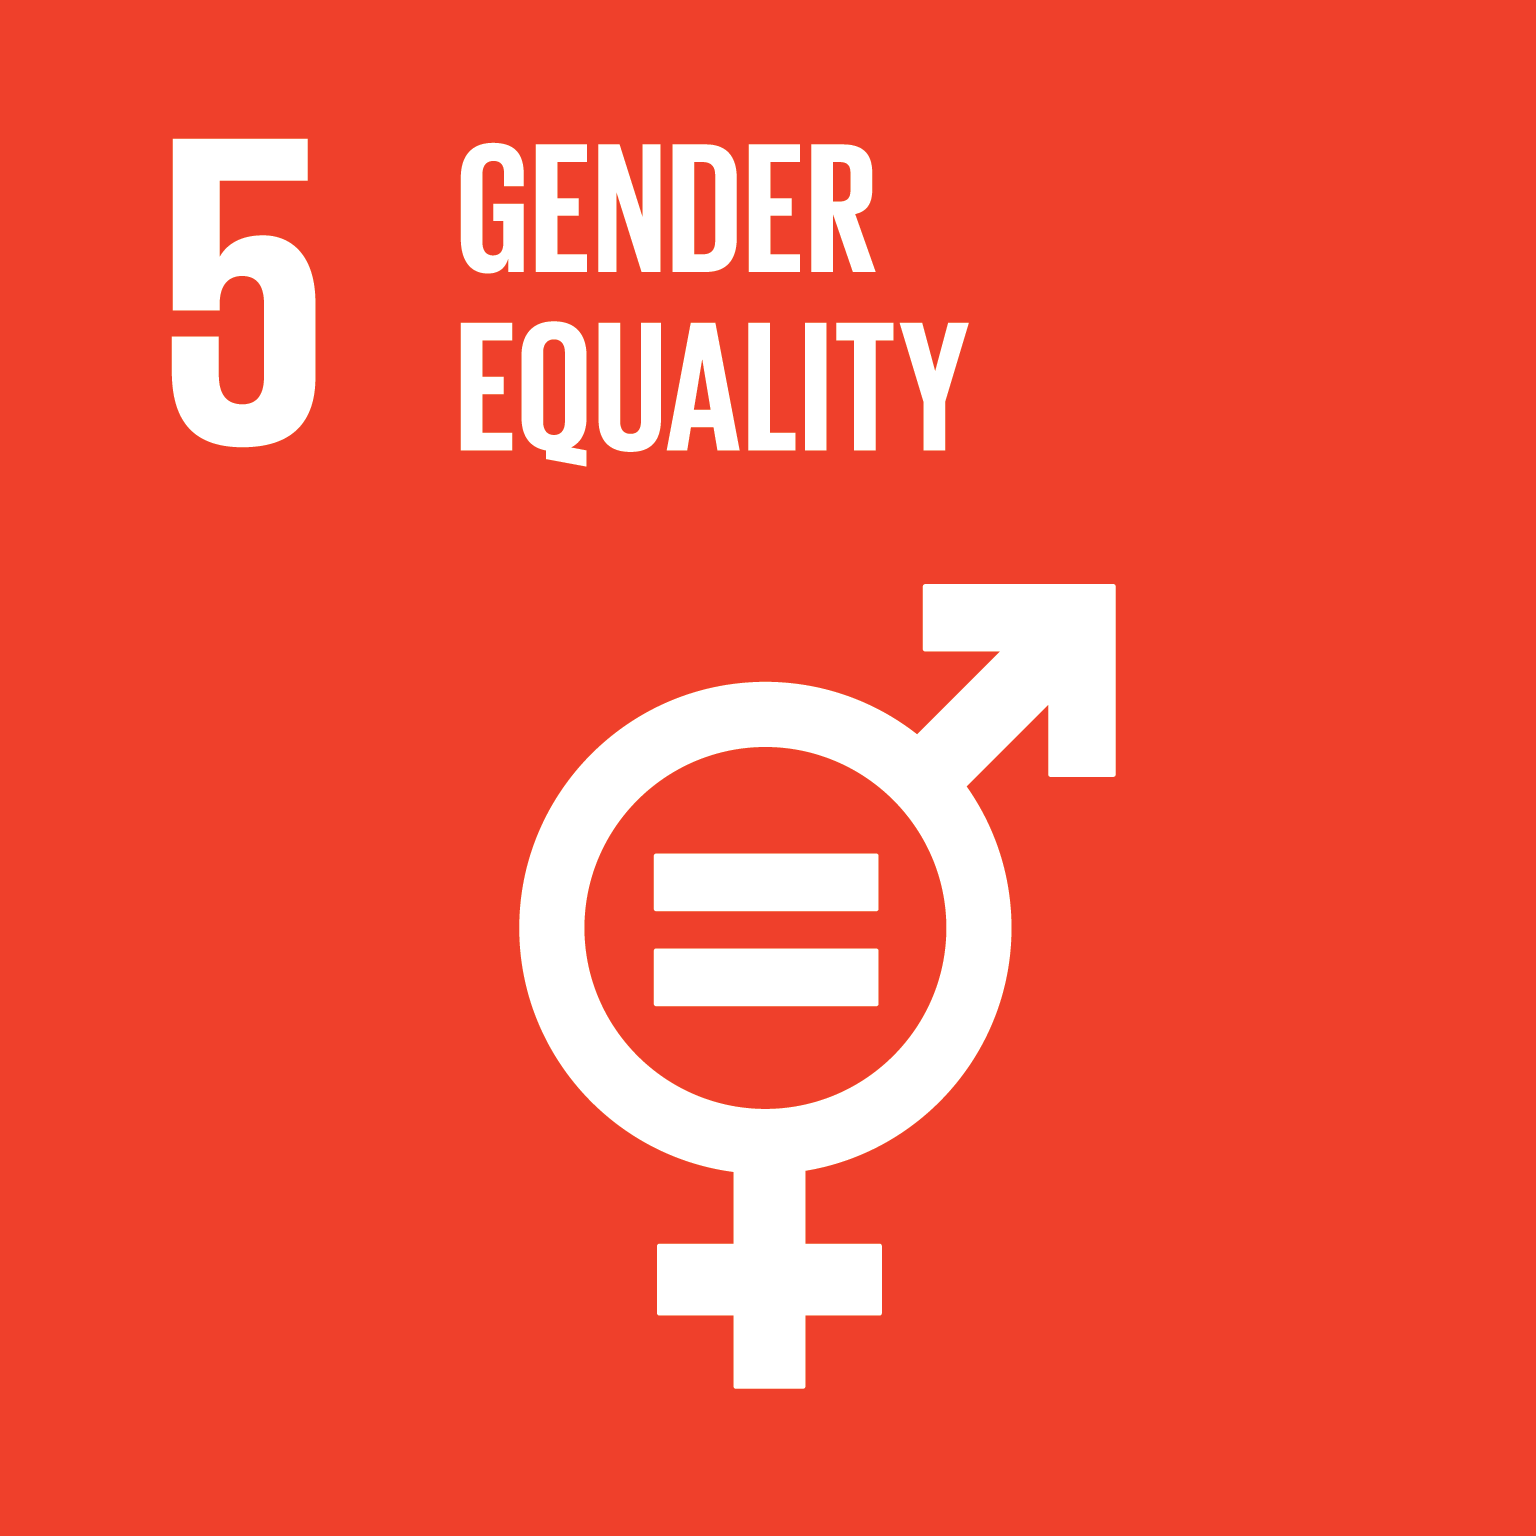 SUSTAINABLE DEVELOPMENT GOAL 5 Achieve gender equality and empower all women and girls